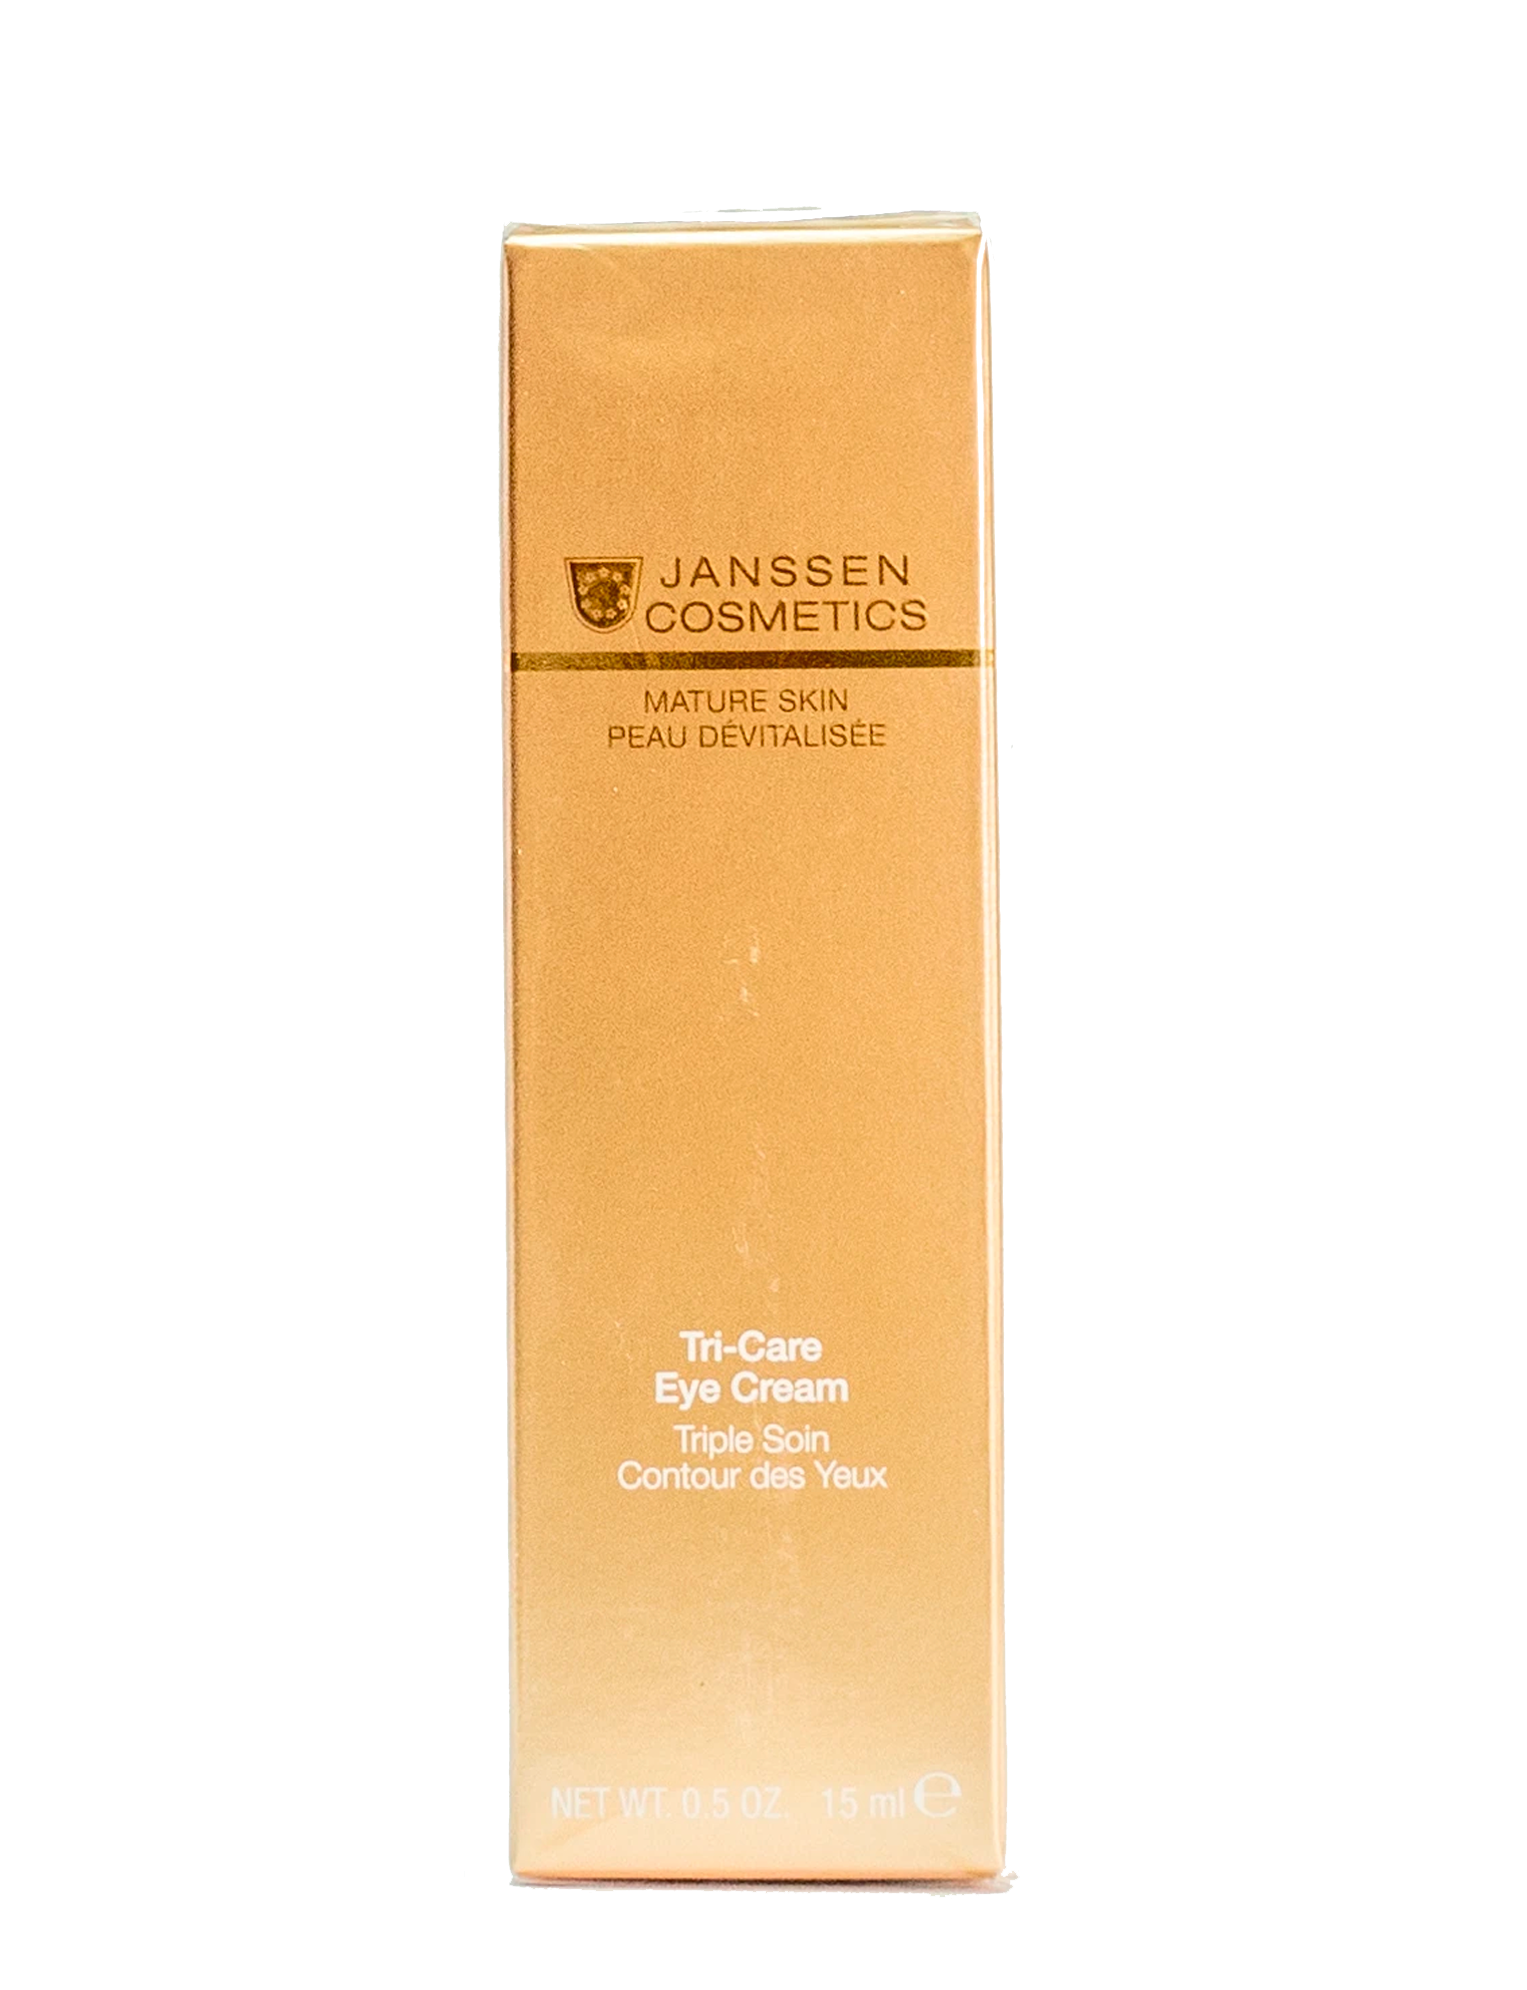 Tri Care Eye Cream Janssen Cosmetics